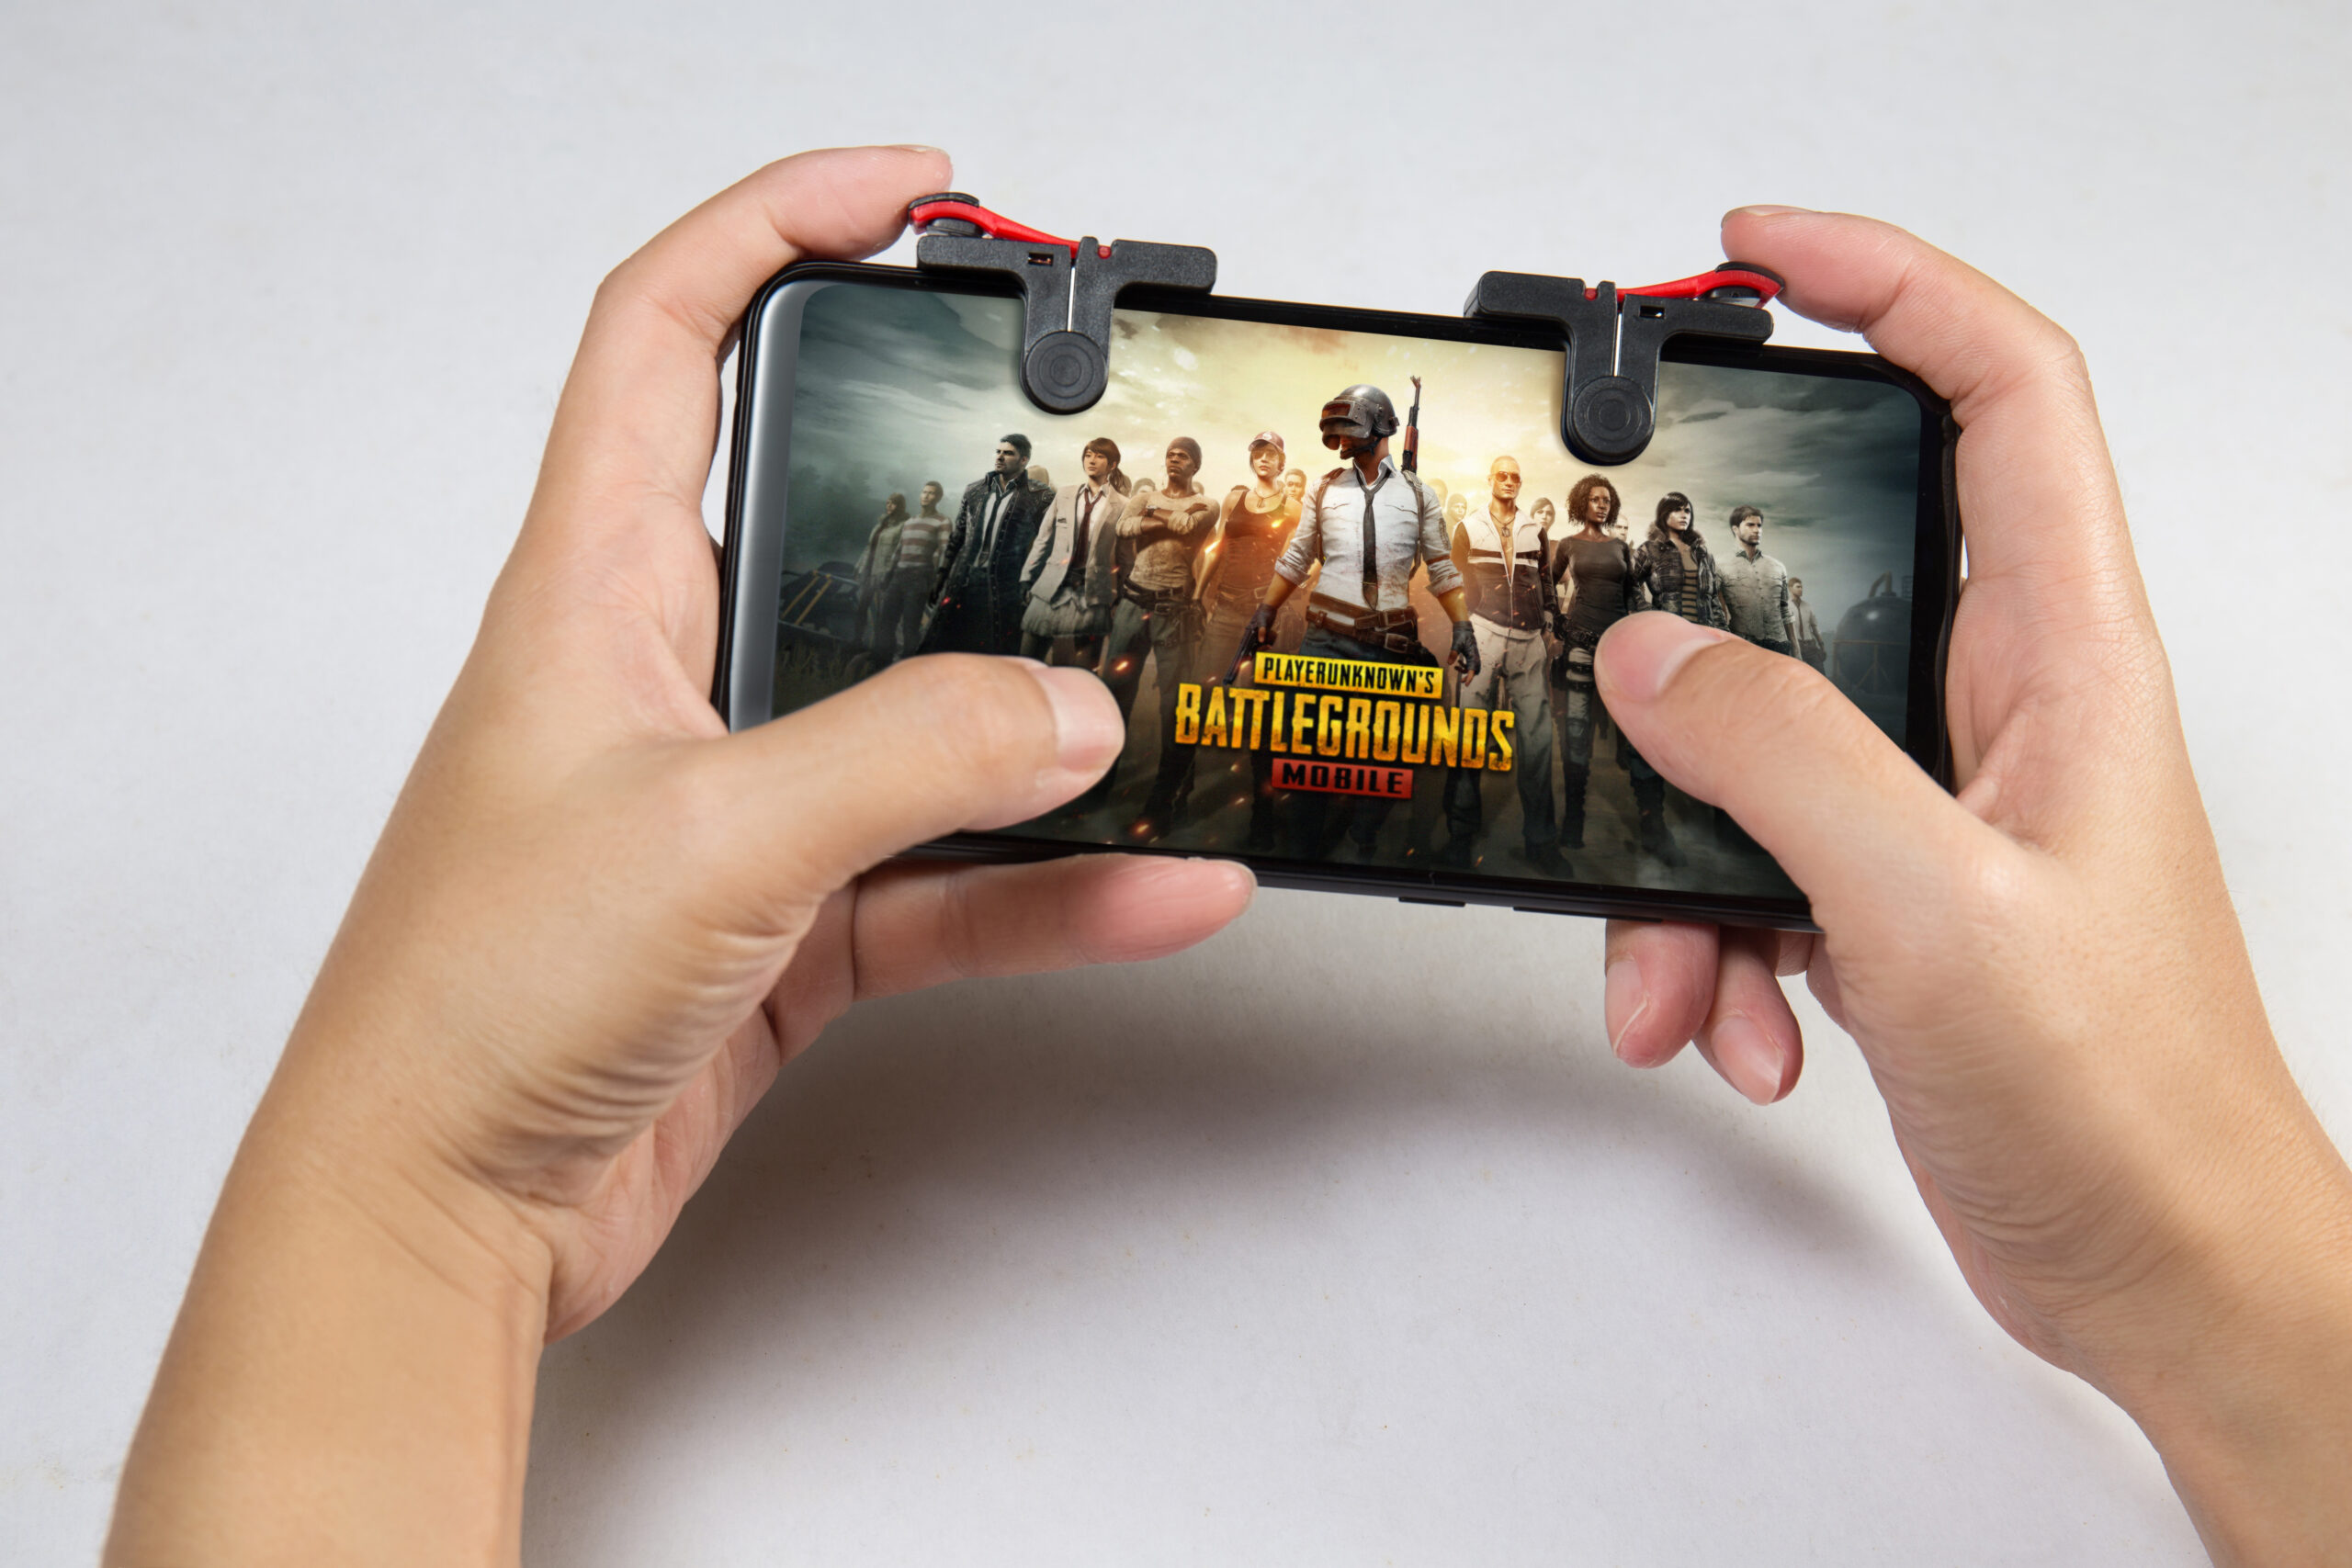 Hand holding a smartphone with Player's Unknown Battleground also known as PUBG online shooting gaming